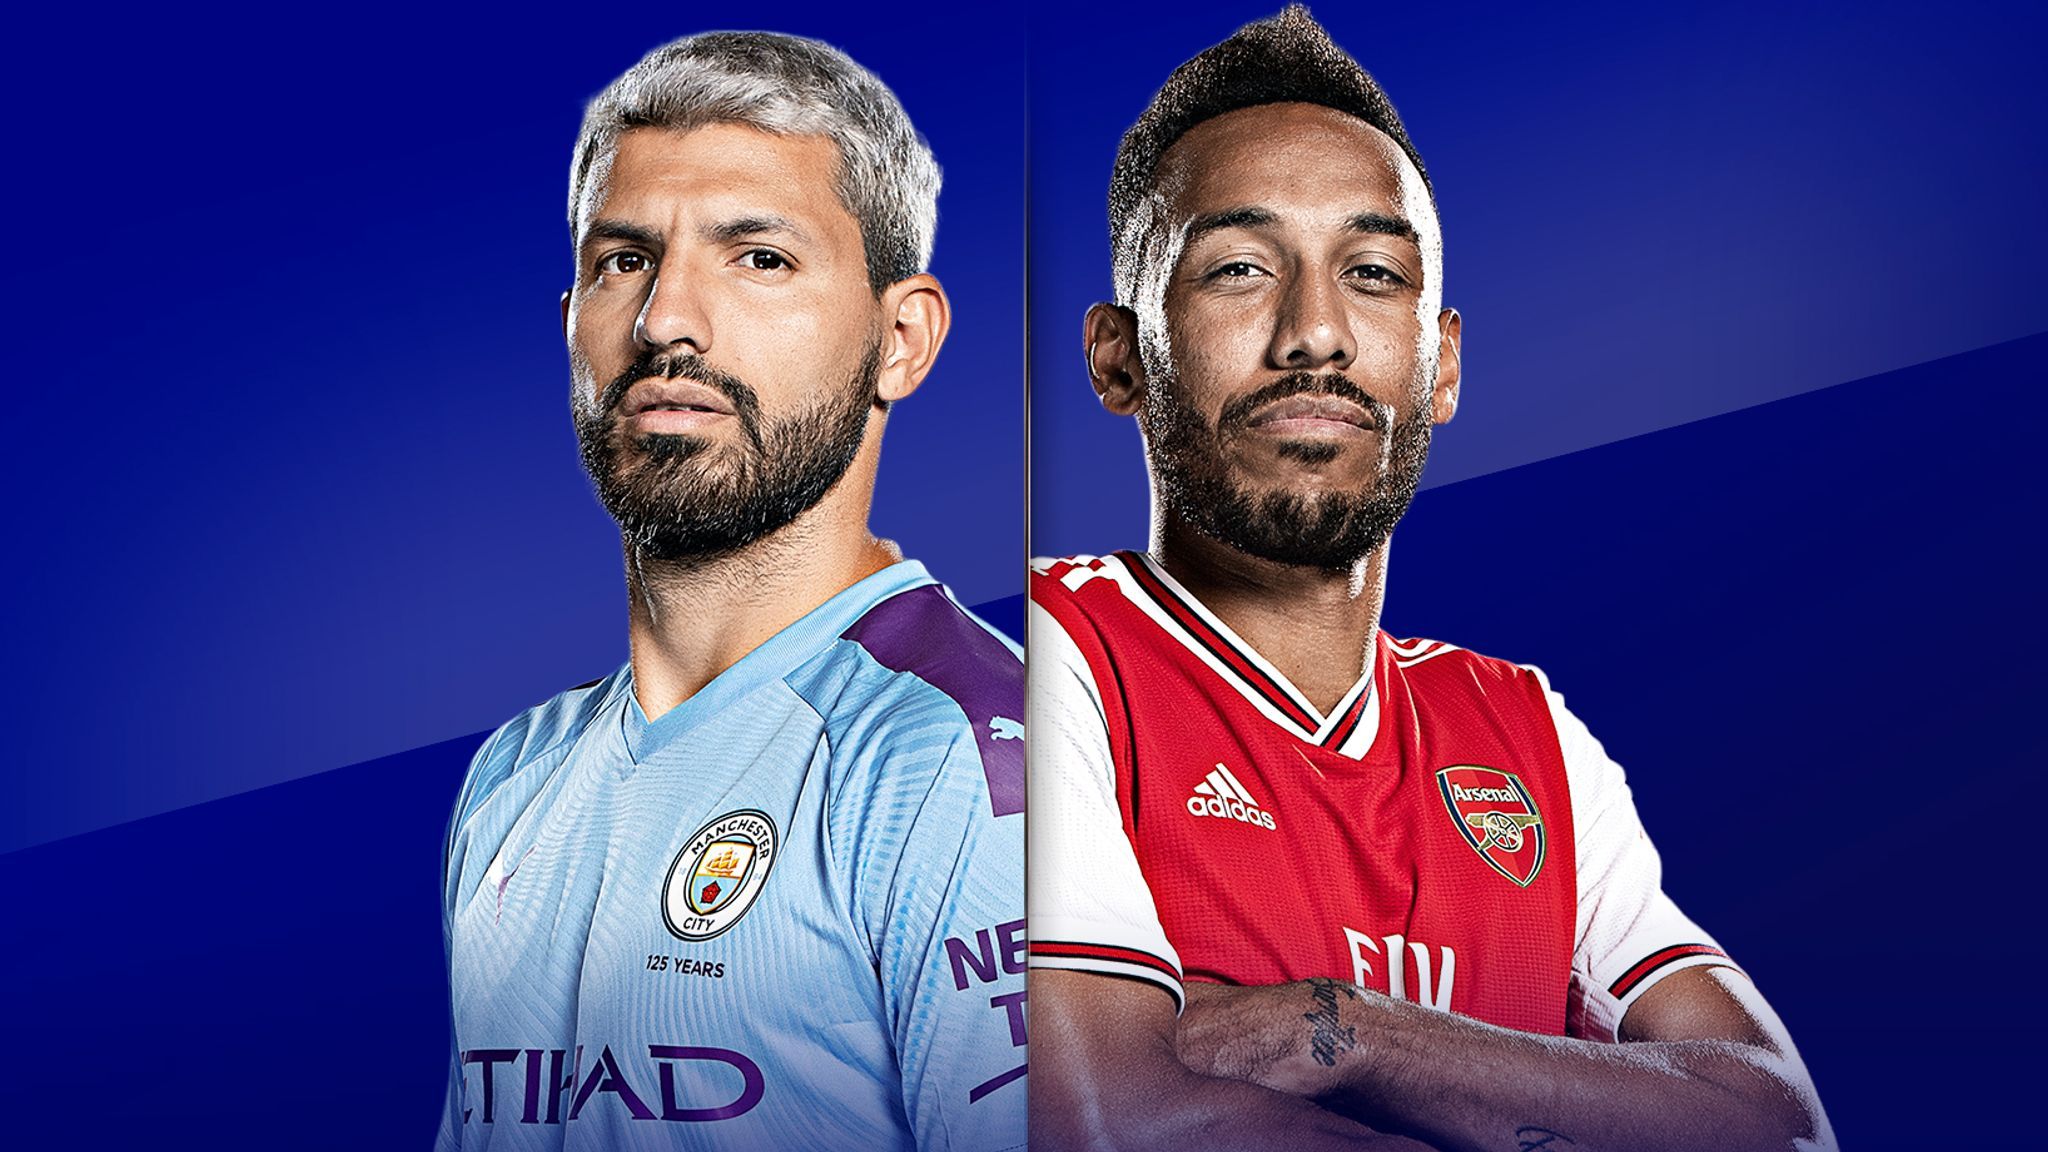 Manchester City vs Arsenal preview - game postponed   Football News   Sky  Sports